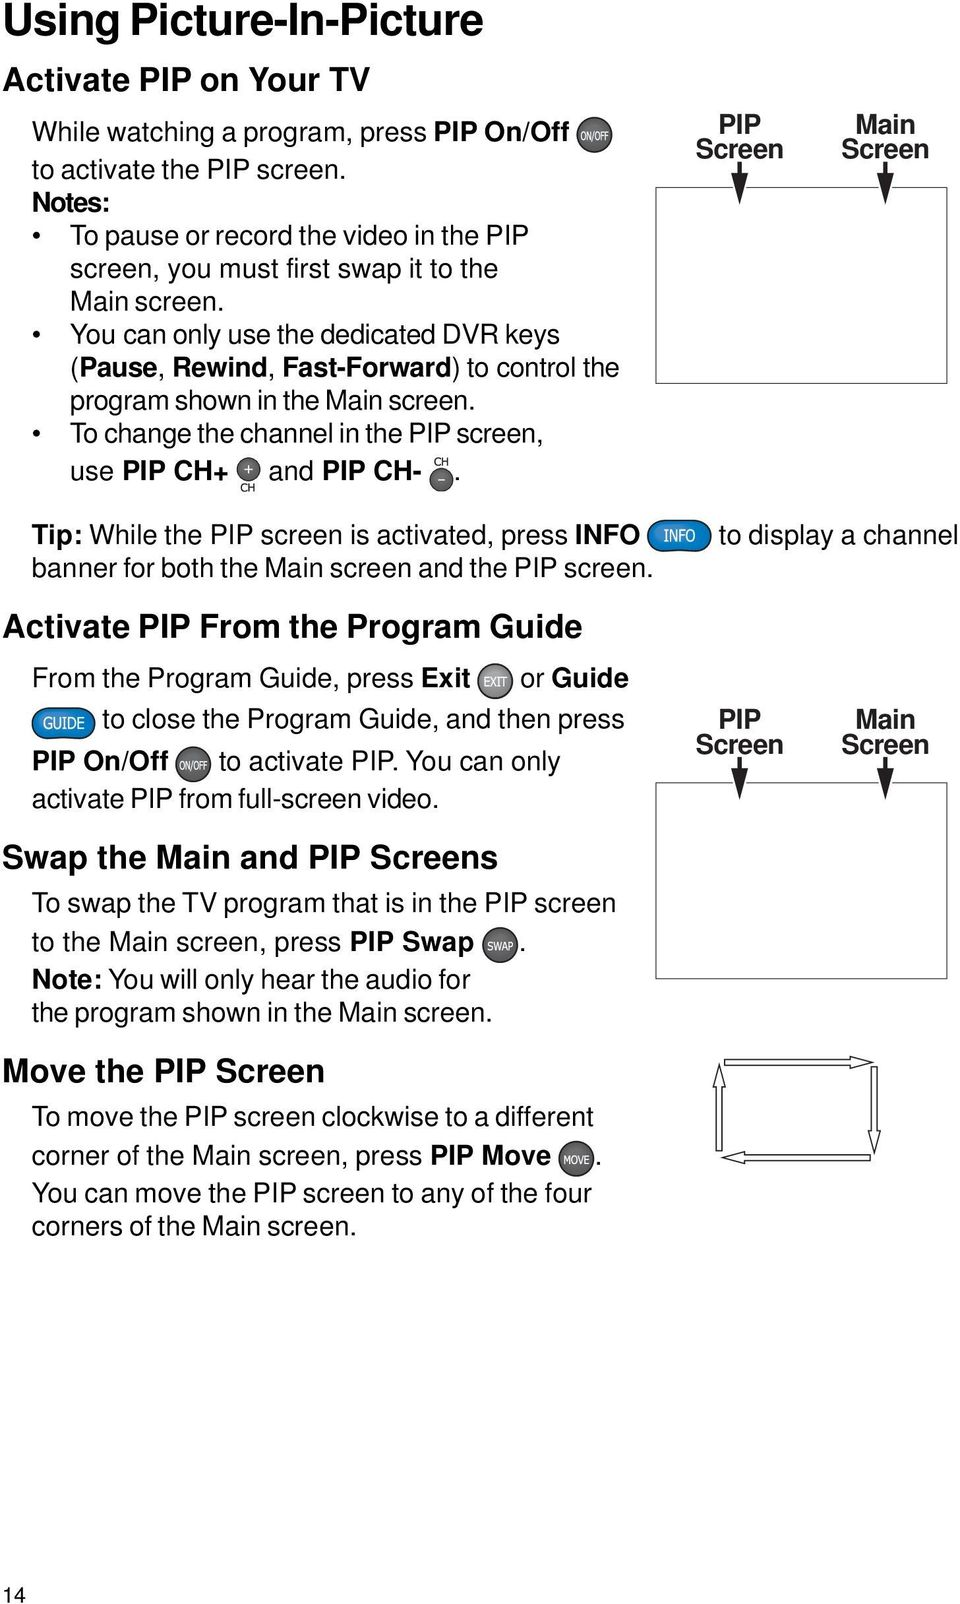 You can only use the dedicated DVR keys (Pause, Rewind, Fast-Forward) to control the program shown in the Main screen. To change the channel in the PIP screen, use PIP CH+ and PIP CH-.